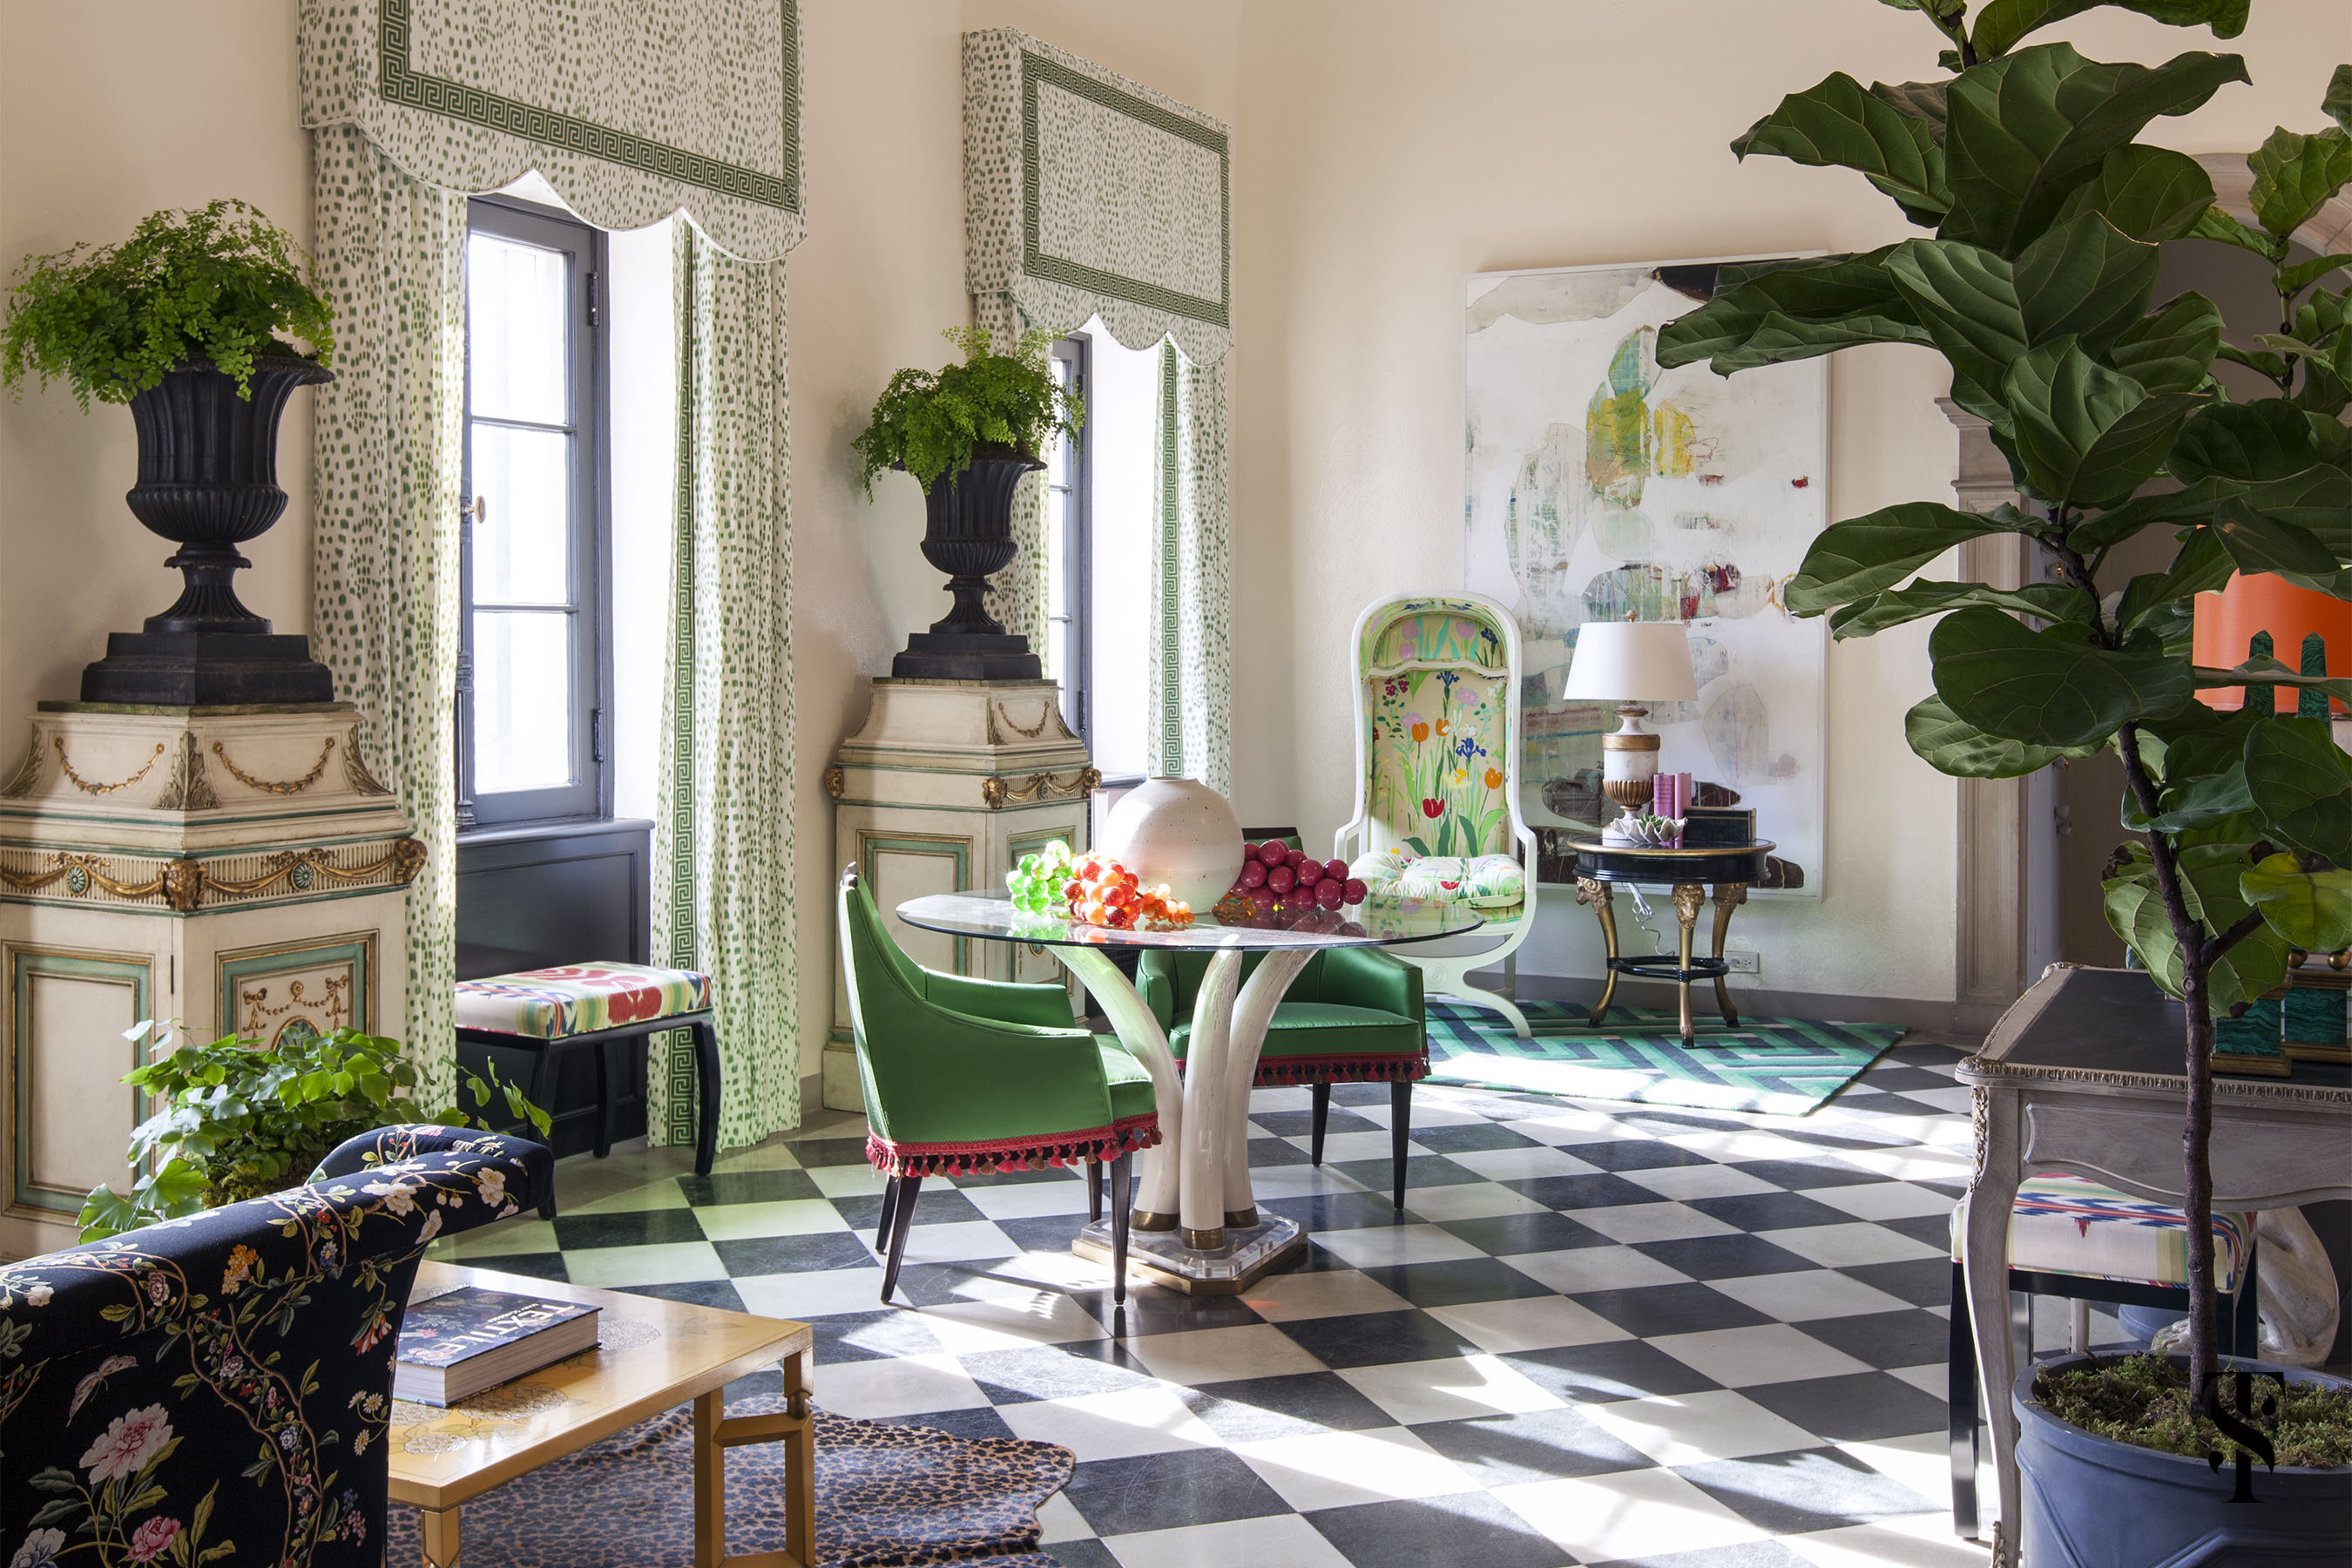 Lake Forest Show House Gallery, Interior Design By Summer Thornton Design